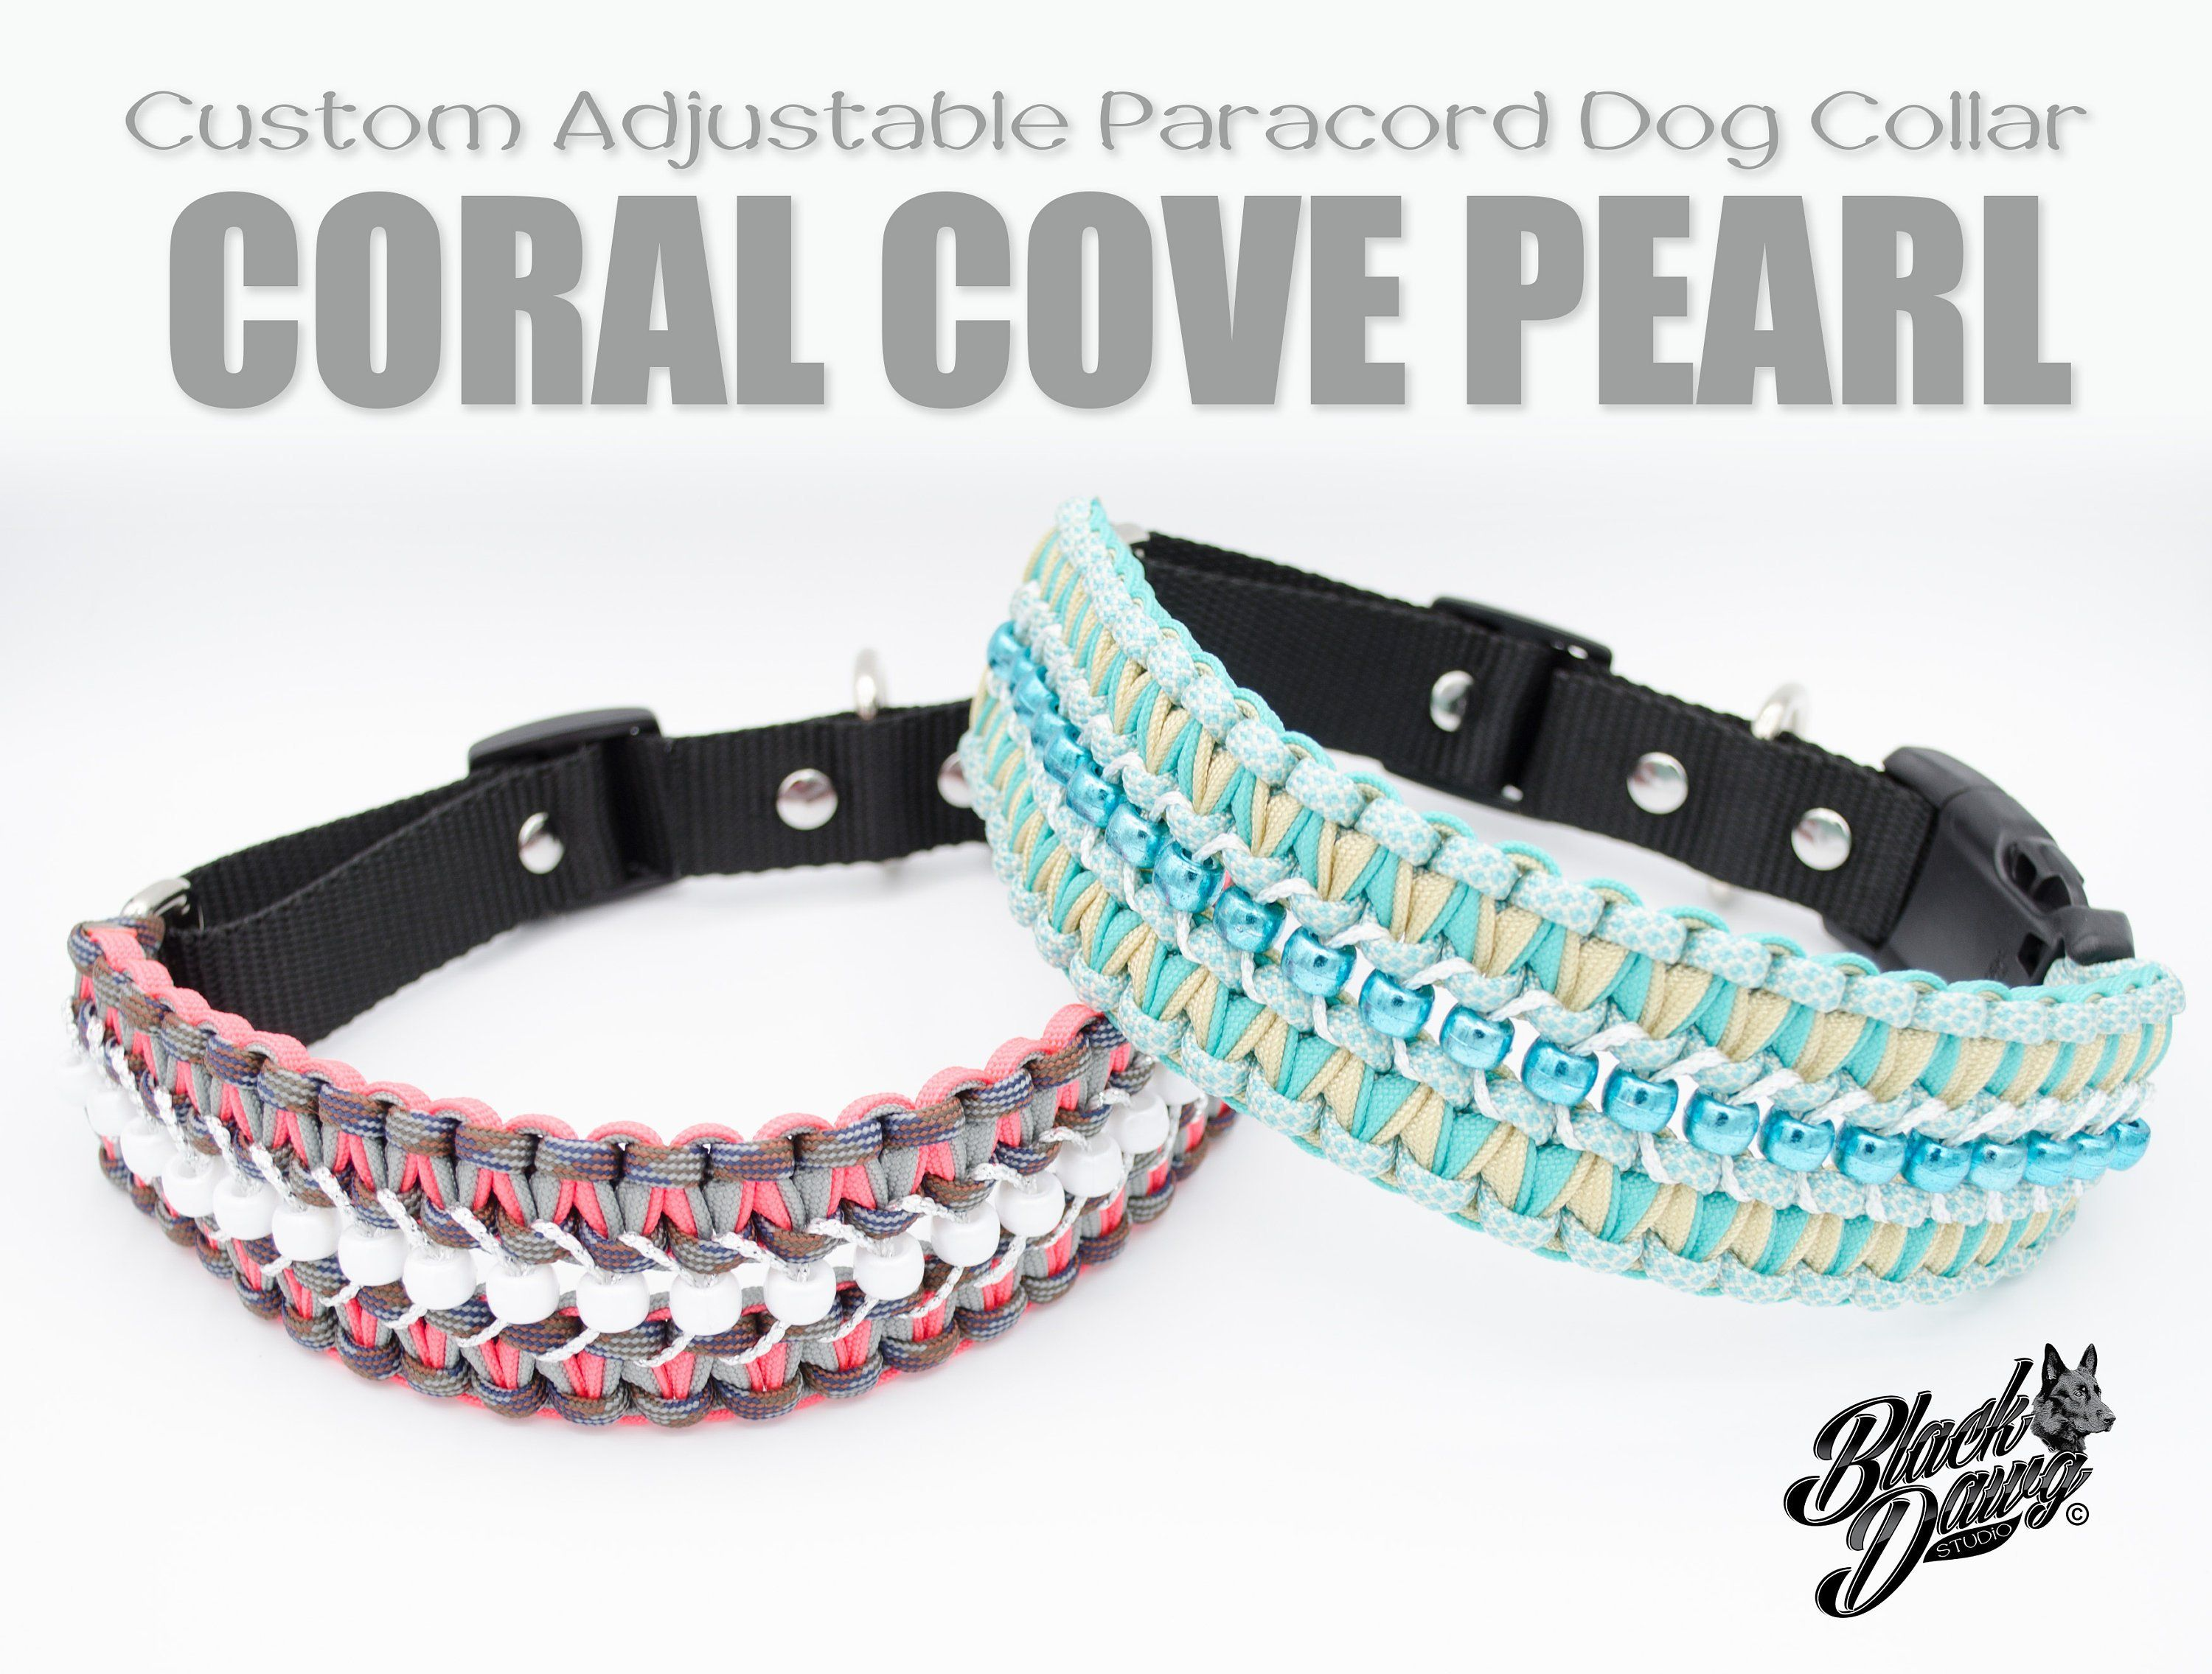 Custom Adjustable Paracord Dog Collar Coral Cove Pearl Design